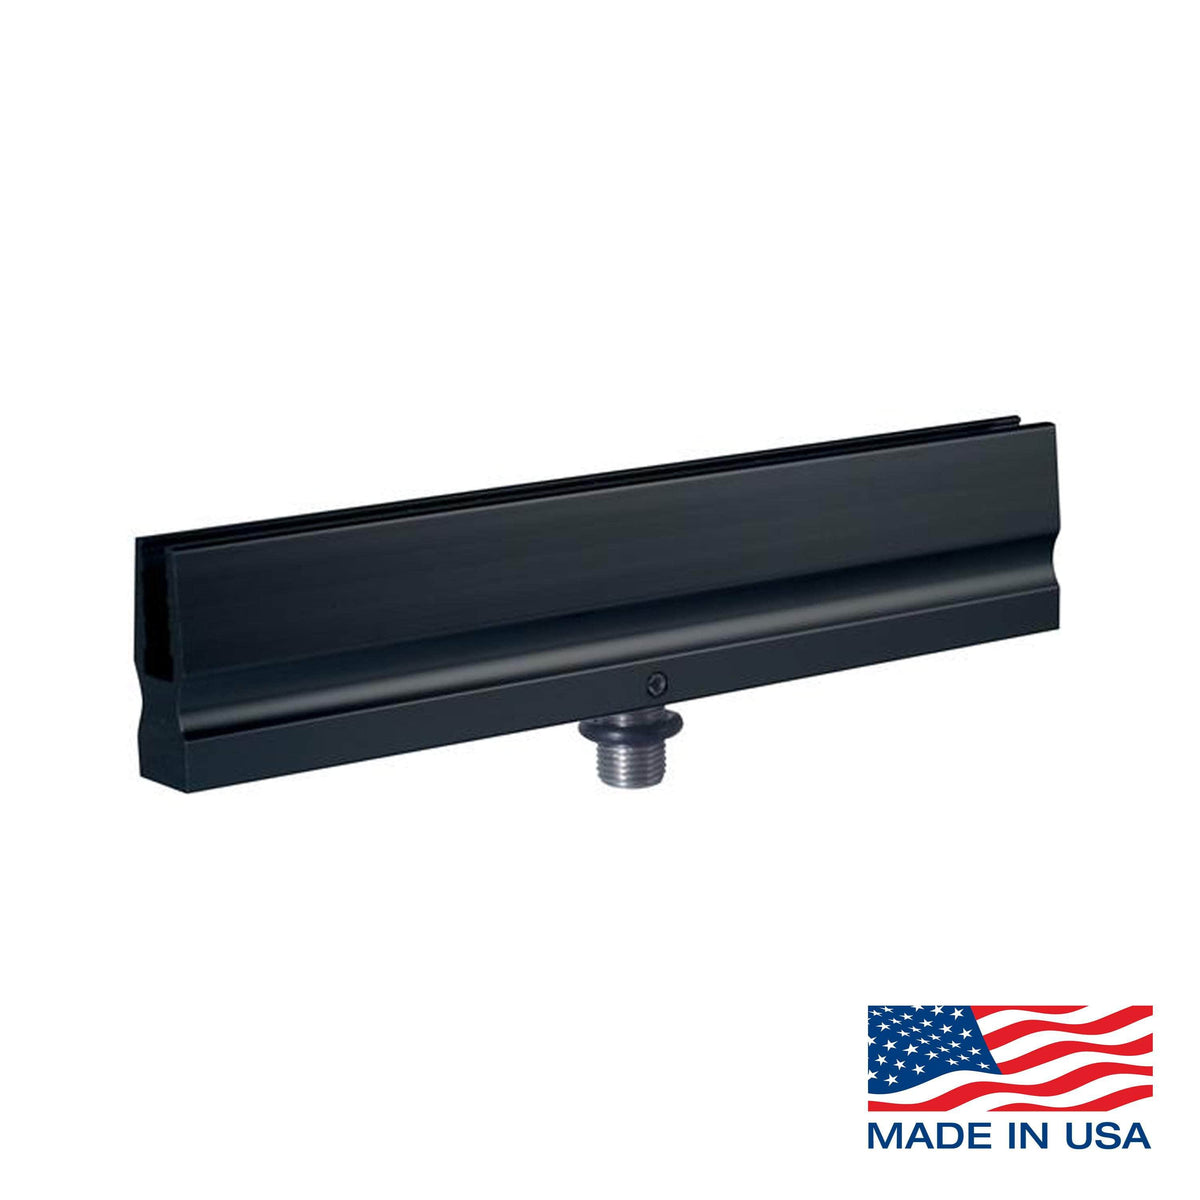 Retracta Belt Sign Bracket For Visiontron Barriers And